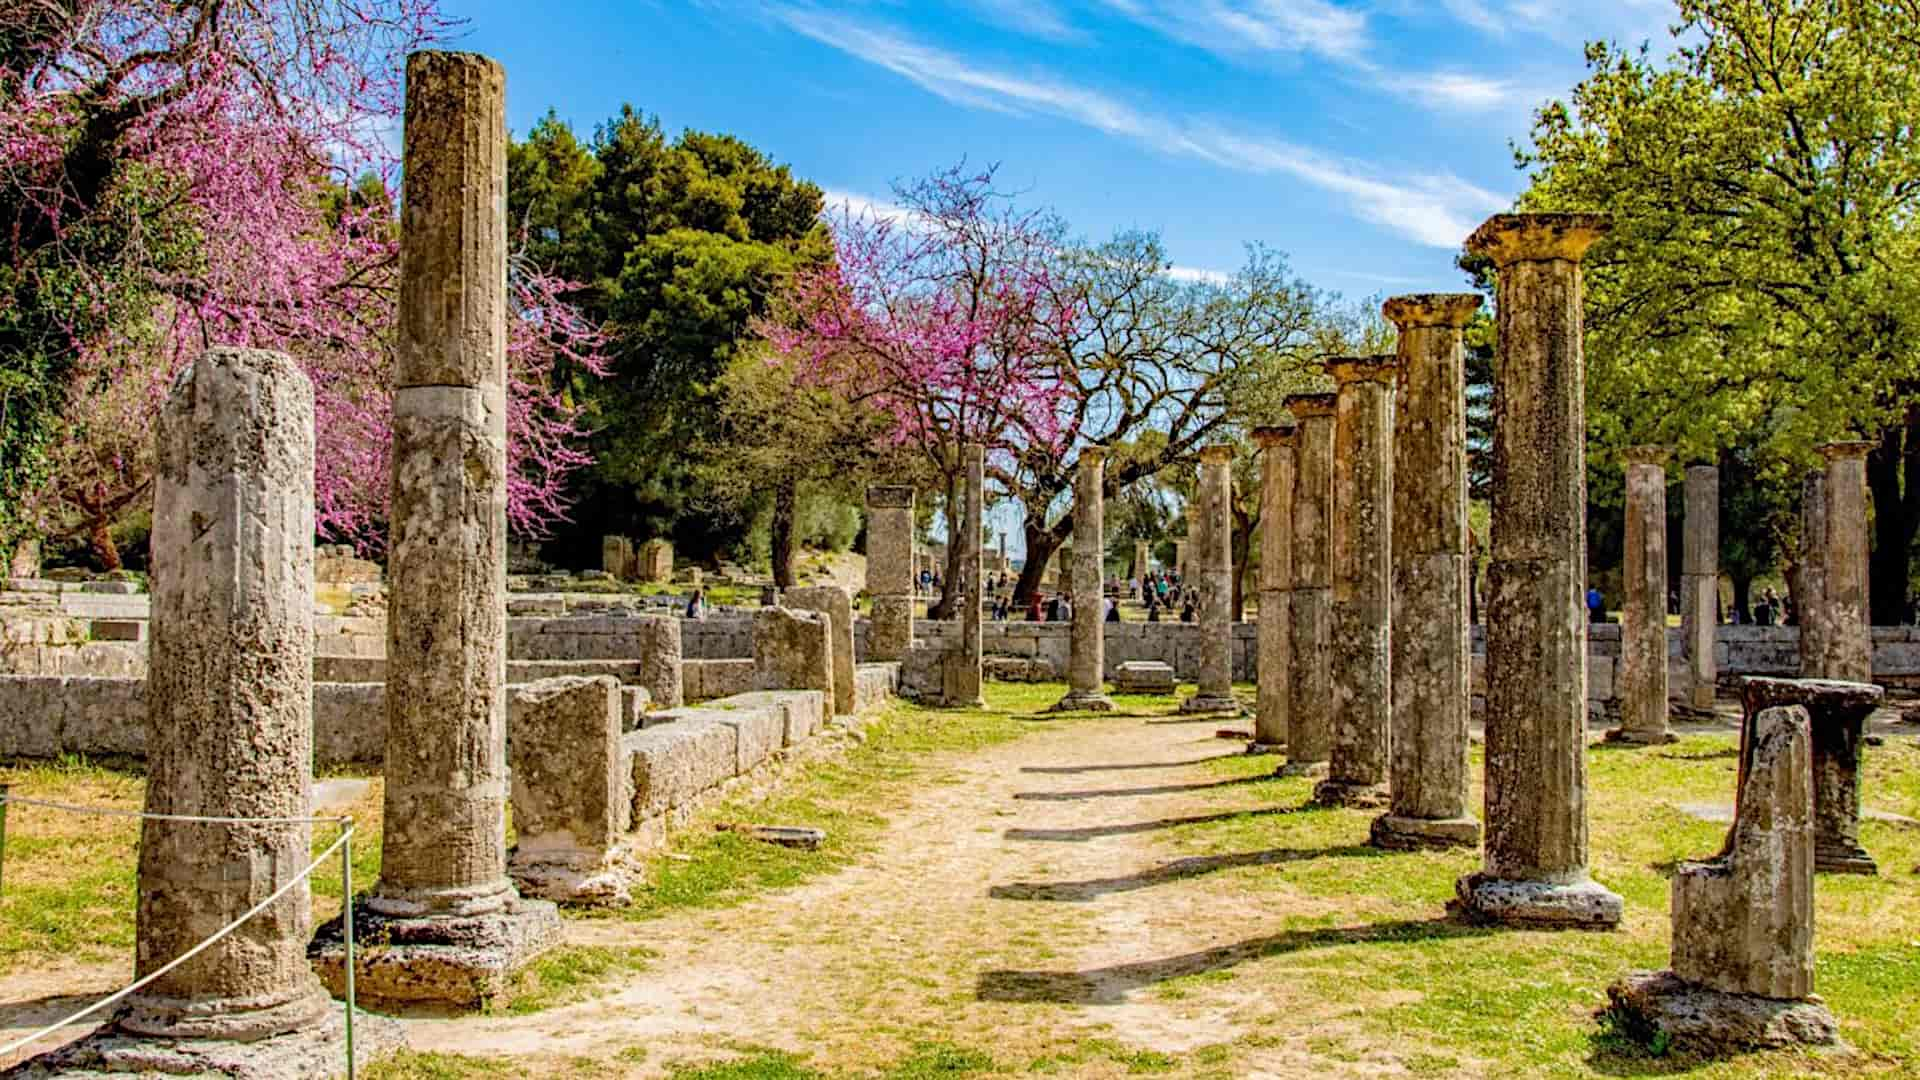 Olympia in the Peloponnese – the Cradle of the Olympic Games and the Greek Sanctuary